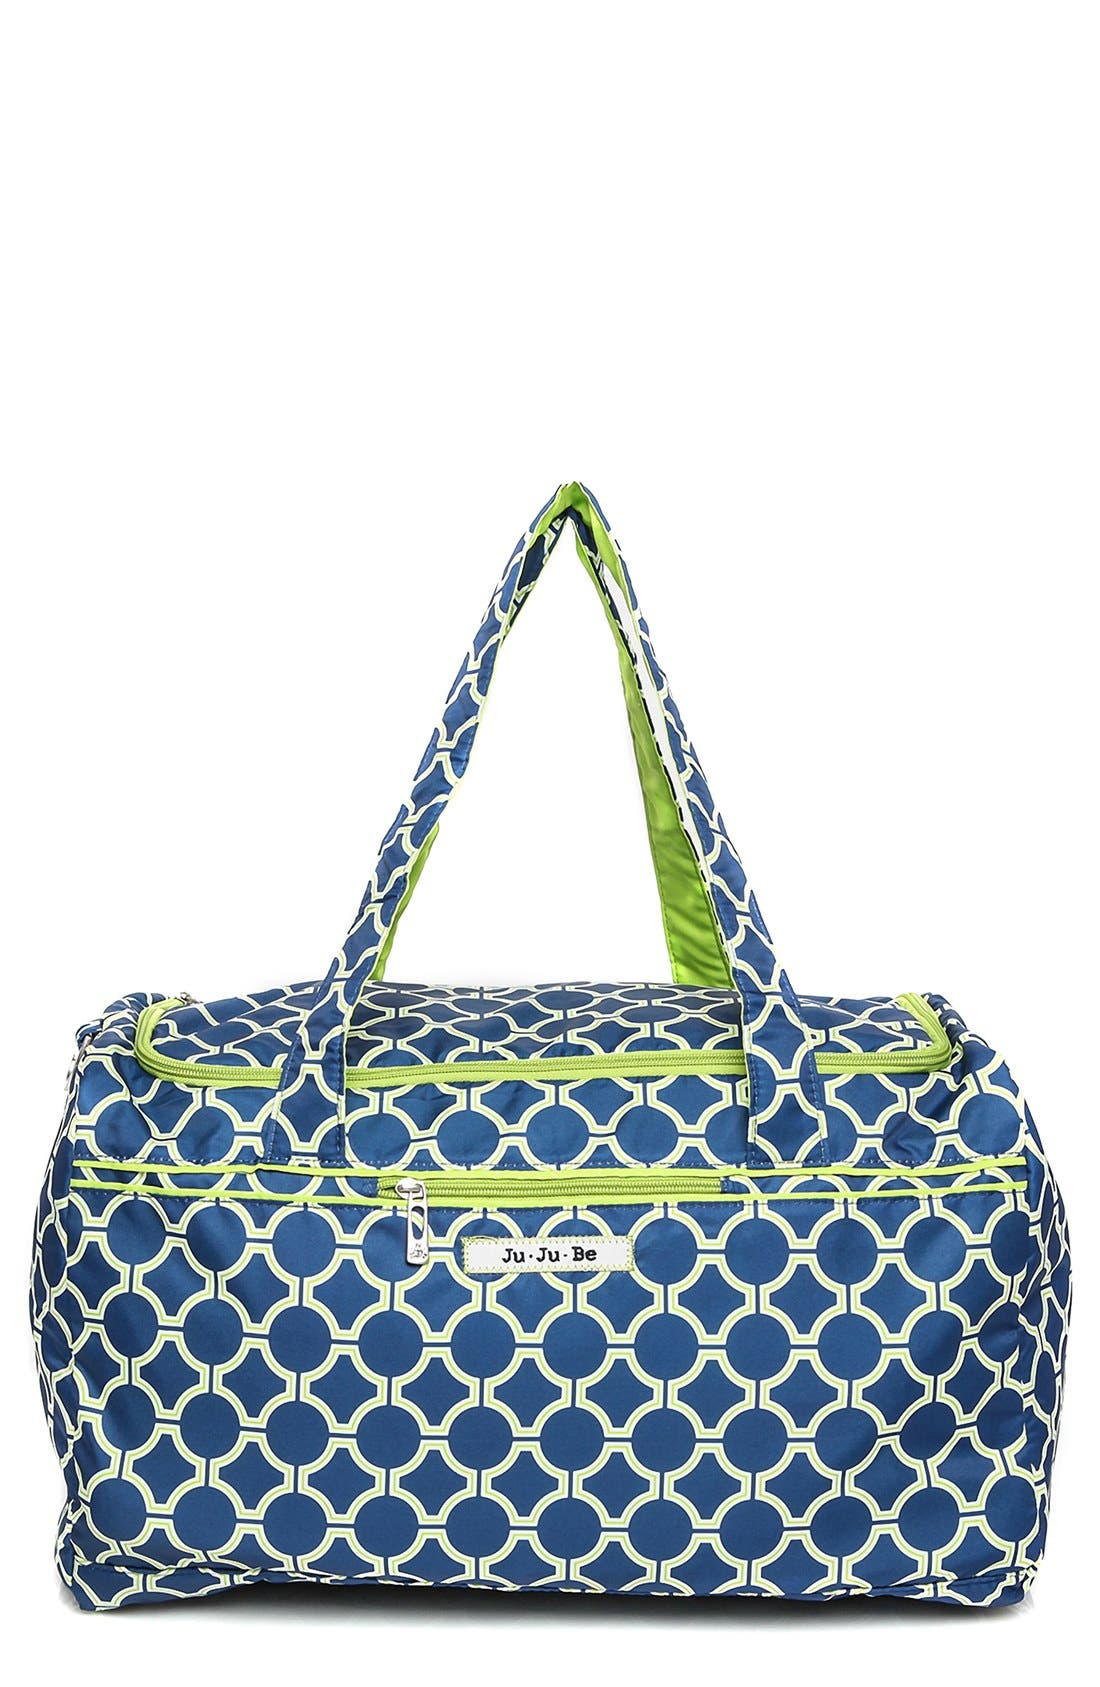 'Starlet' Travel Diaper Bag,                             Main thumbnail 6, color,